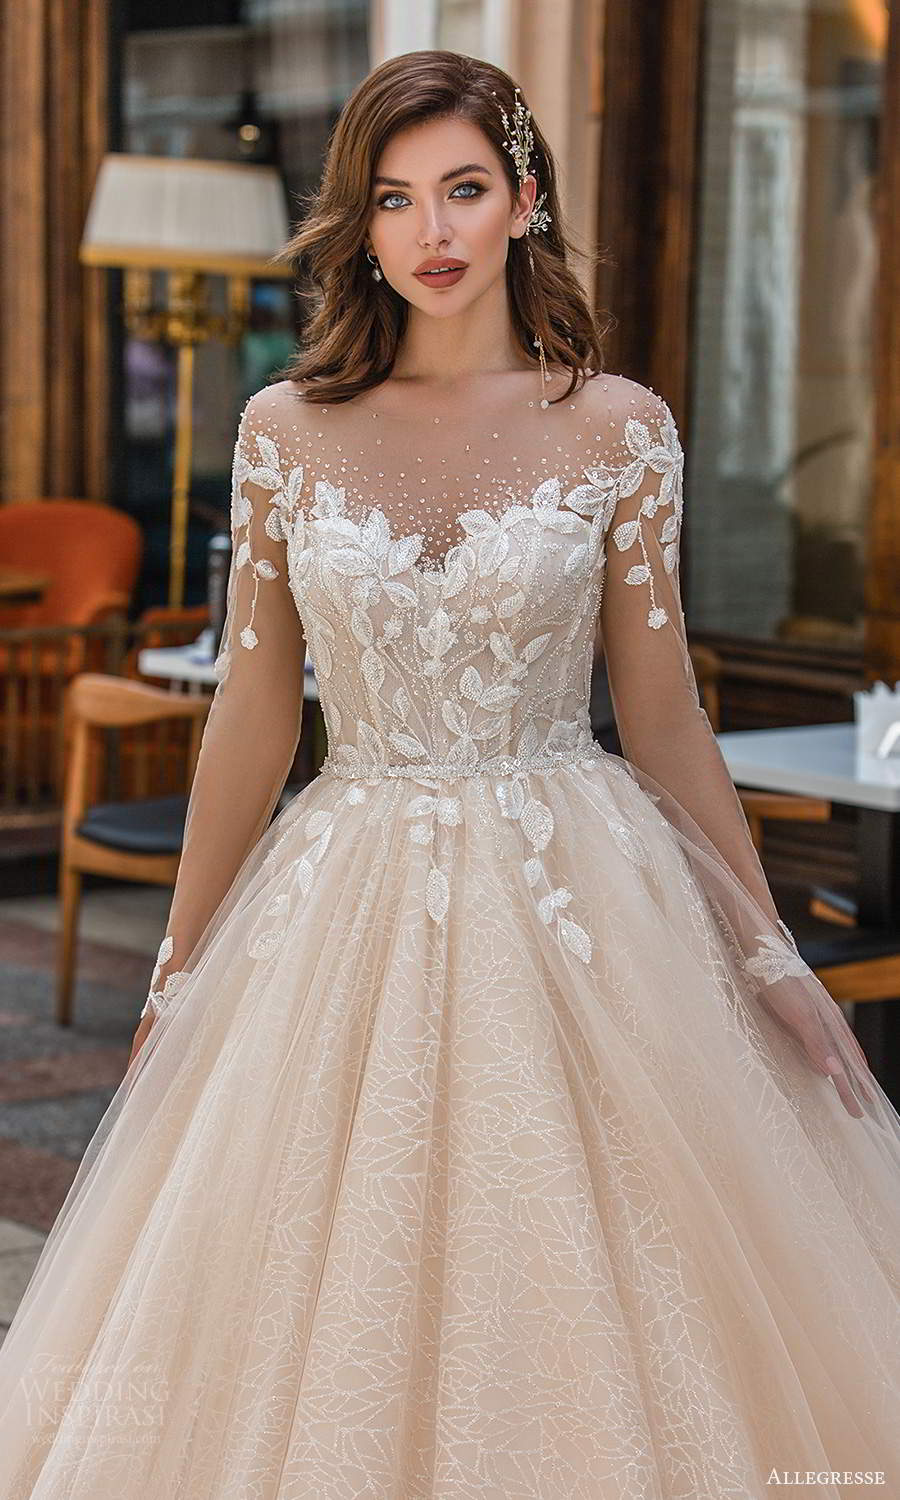 allegresse 2021 bridal illusion long sleeves off shoulder sweetheart neckline embellished bodice a line ball gown wedding dress chapel train blush champagne (9) zv